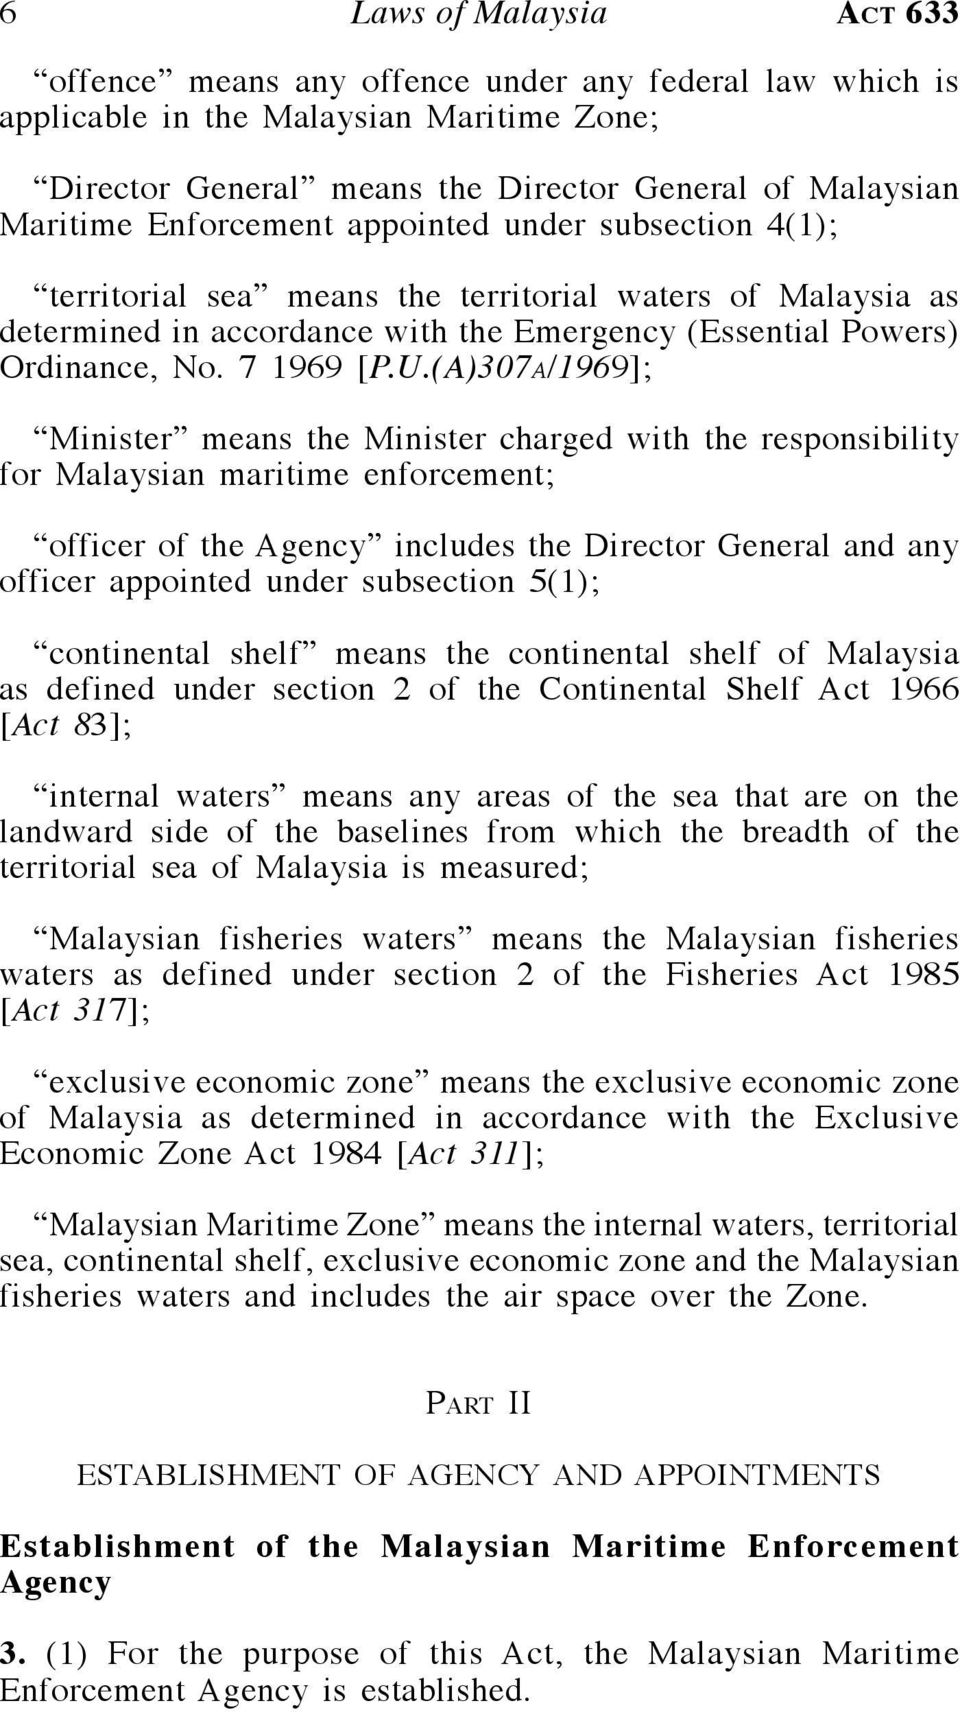 (A)307a/1969]; Minister means the Minister charged with the responsibility for Malaysian maritime enforcement; officer of the Agency includes the Director General and any officer appointed under